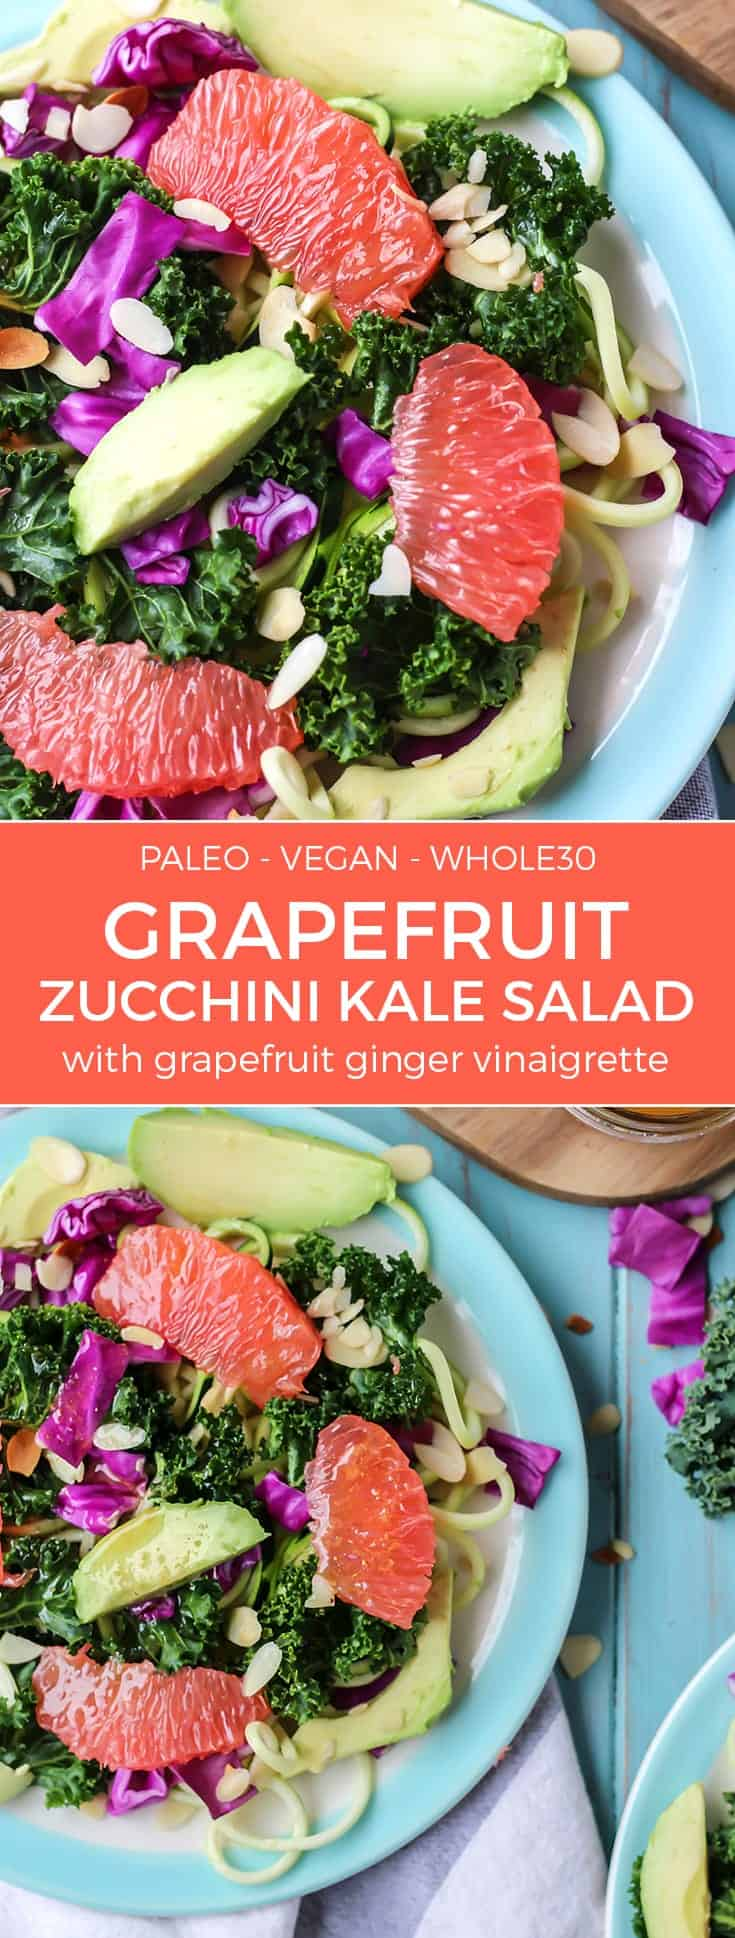 paleo vegan whole30 grapefruit zucchini kale salad with avocado on blue plates pinterest image